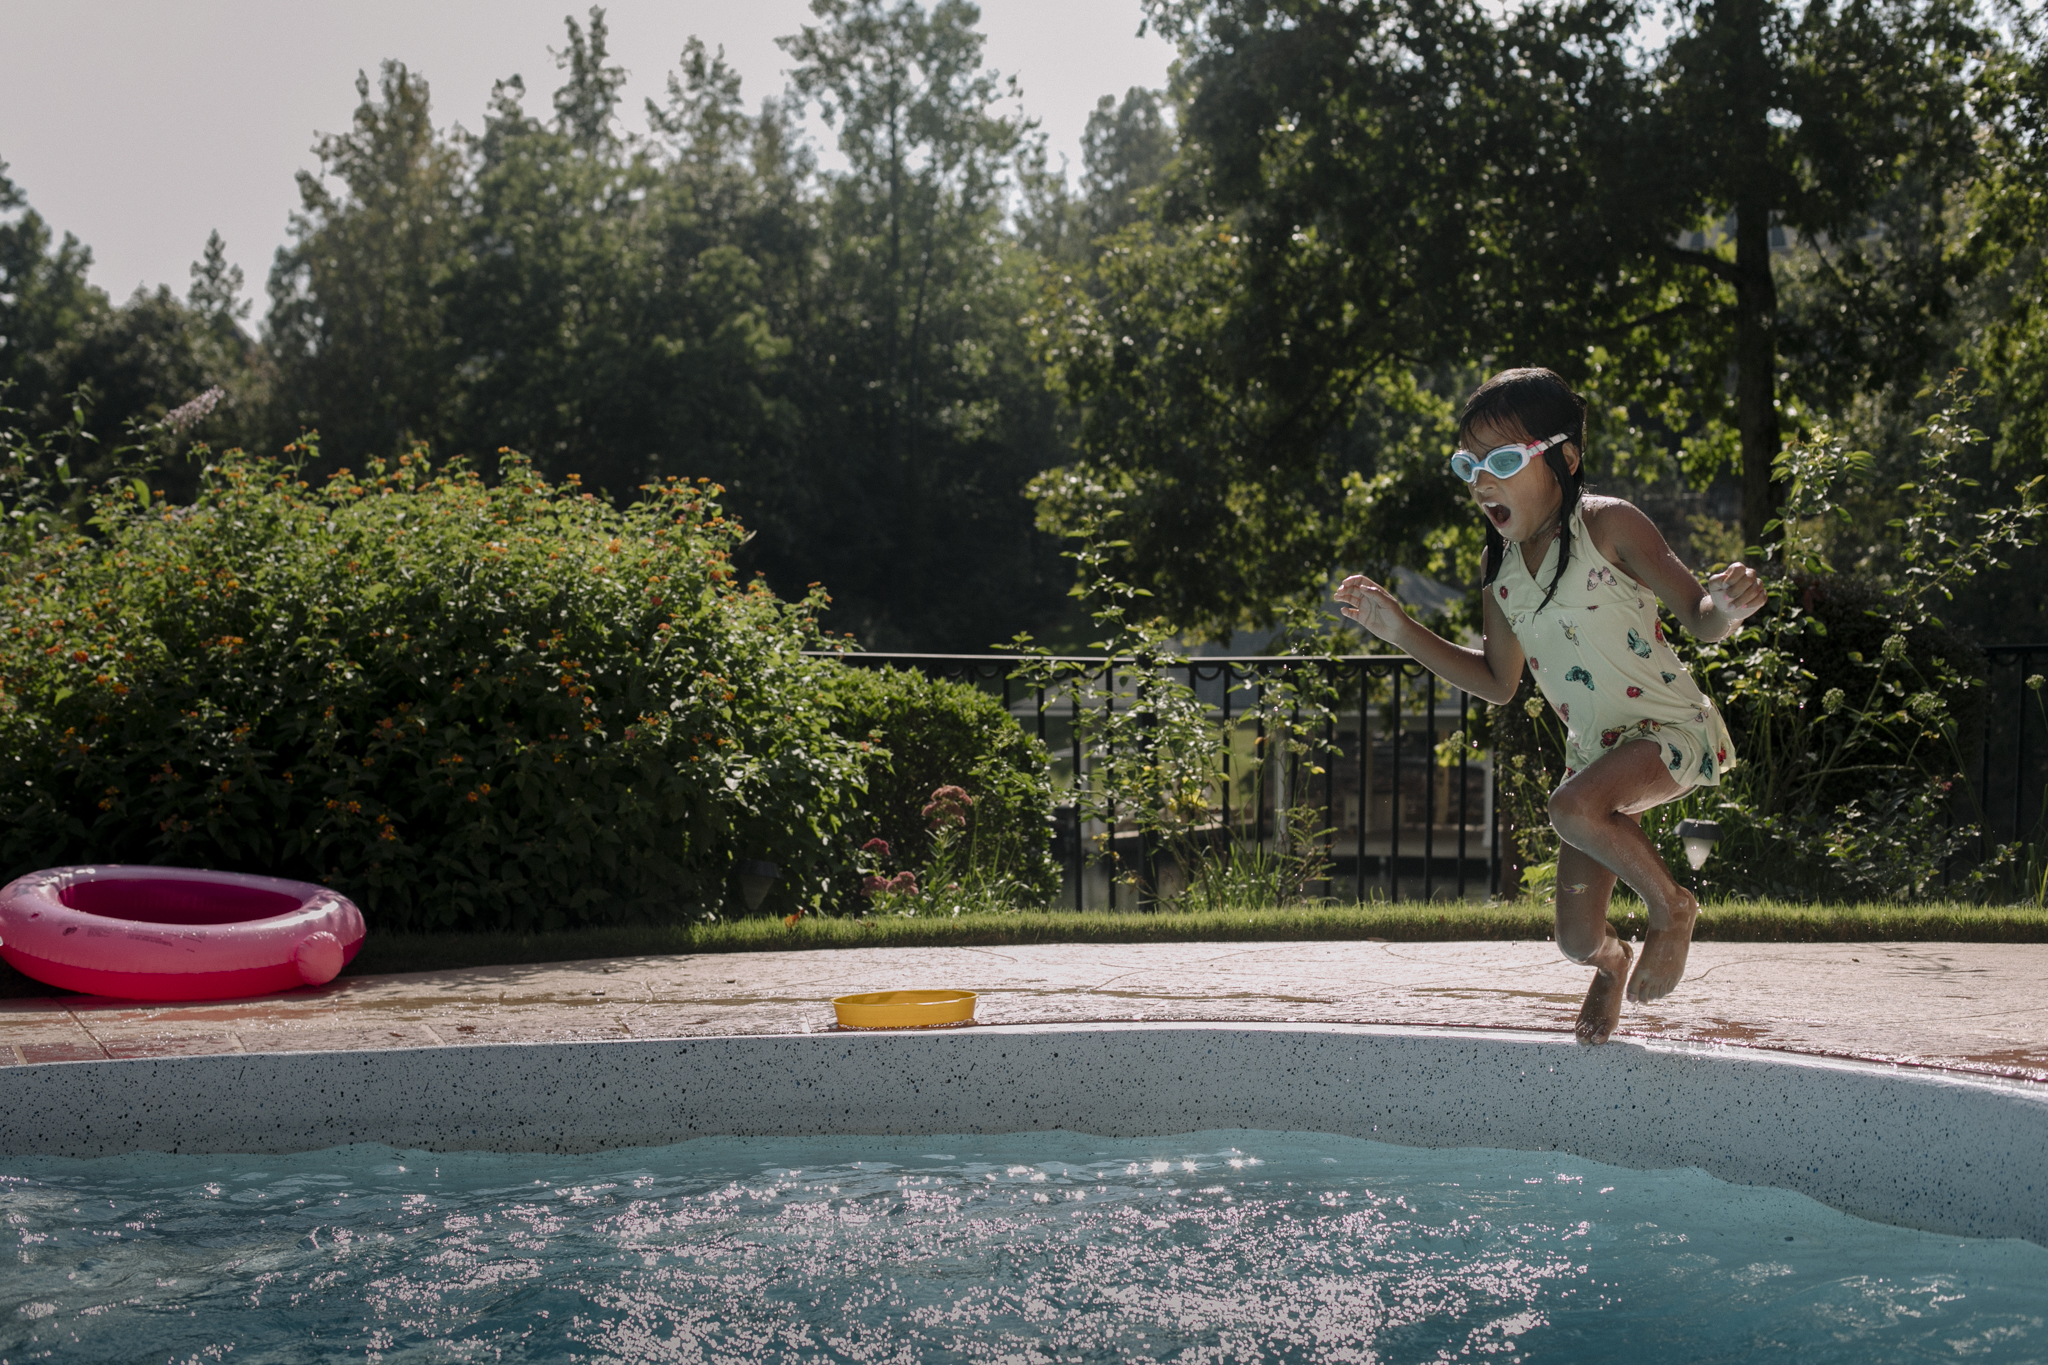 Girl with goggles jumping into the pool